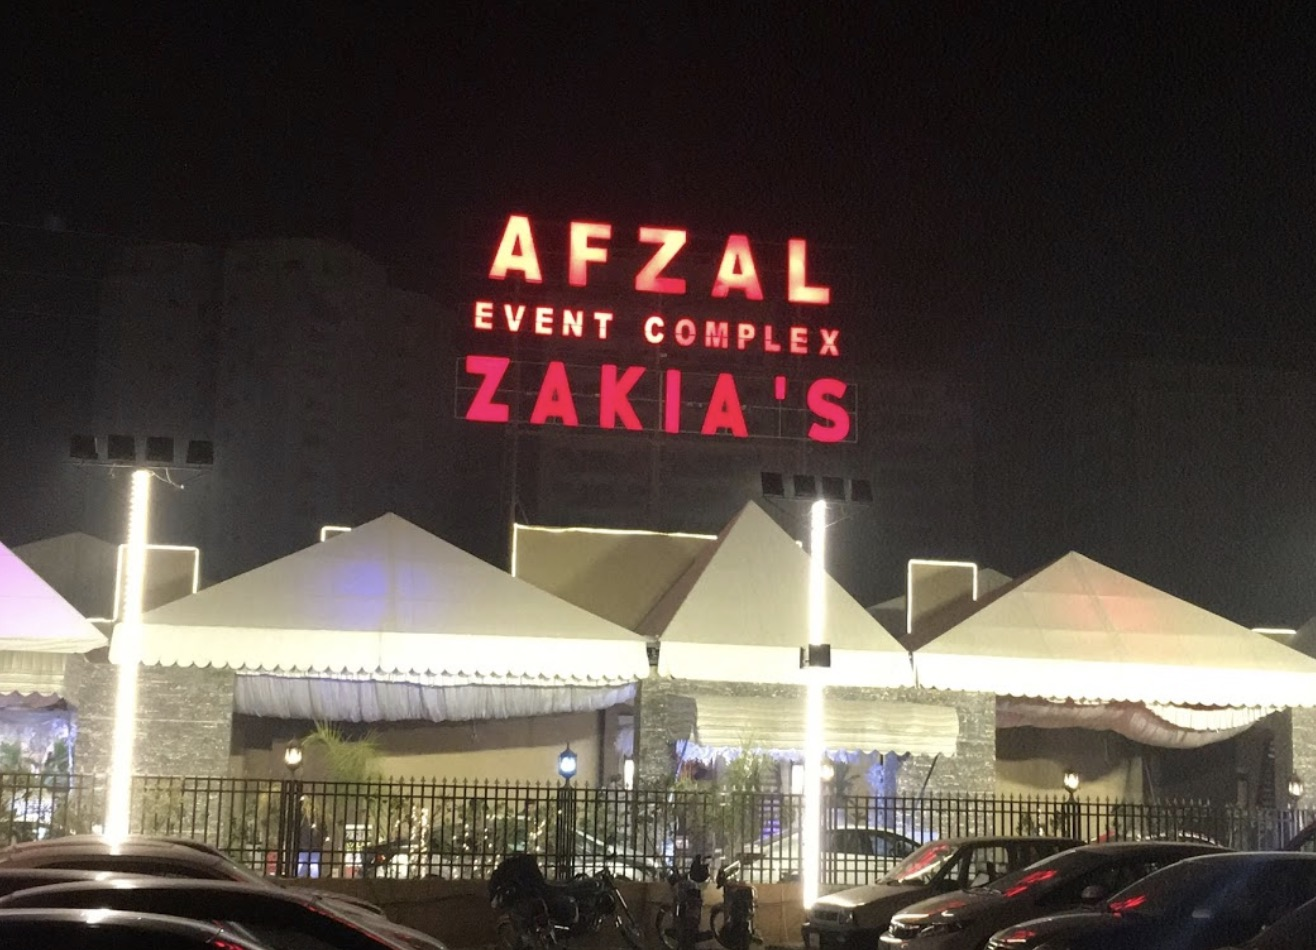 Z A K I A ' S Marquee